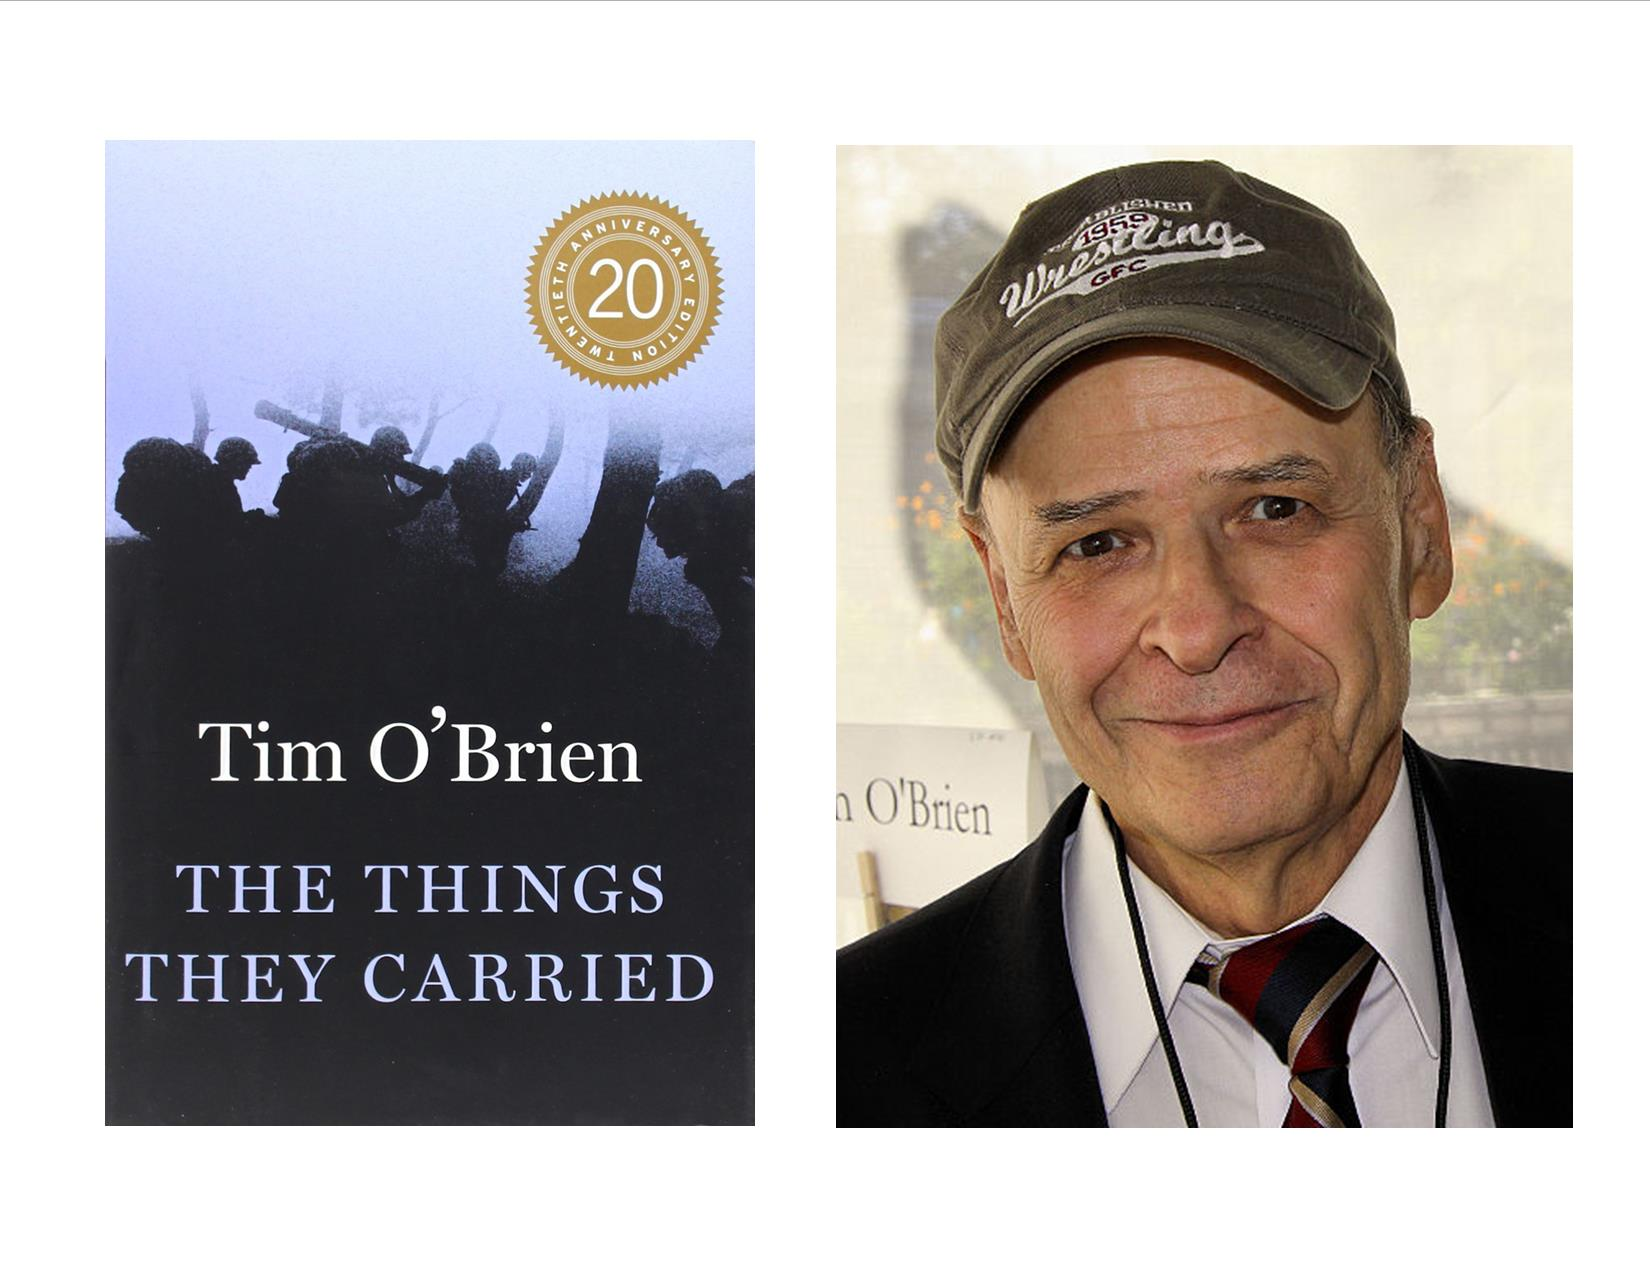 the internal conflict of jimmy cross in the short story the things they carried by tim obrien Start studying the things they carried by tim o'brien study why did lieutenant jimmy cross feel guilty about how does this information contribute to the story.